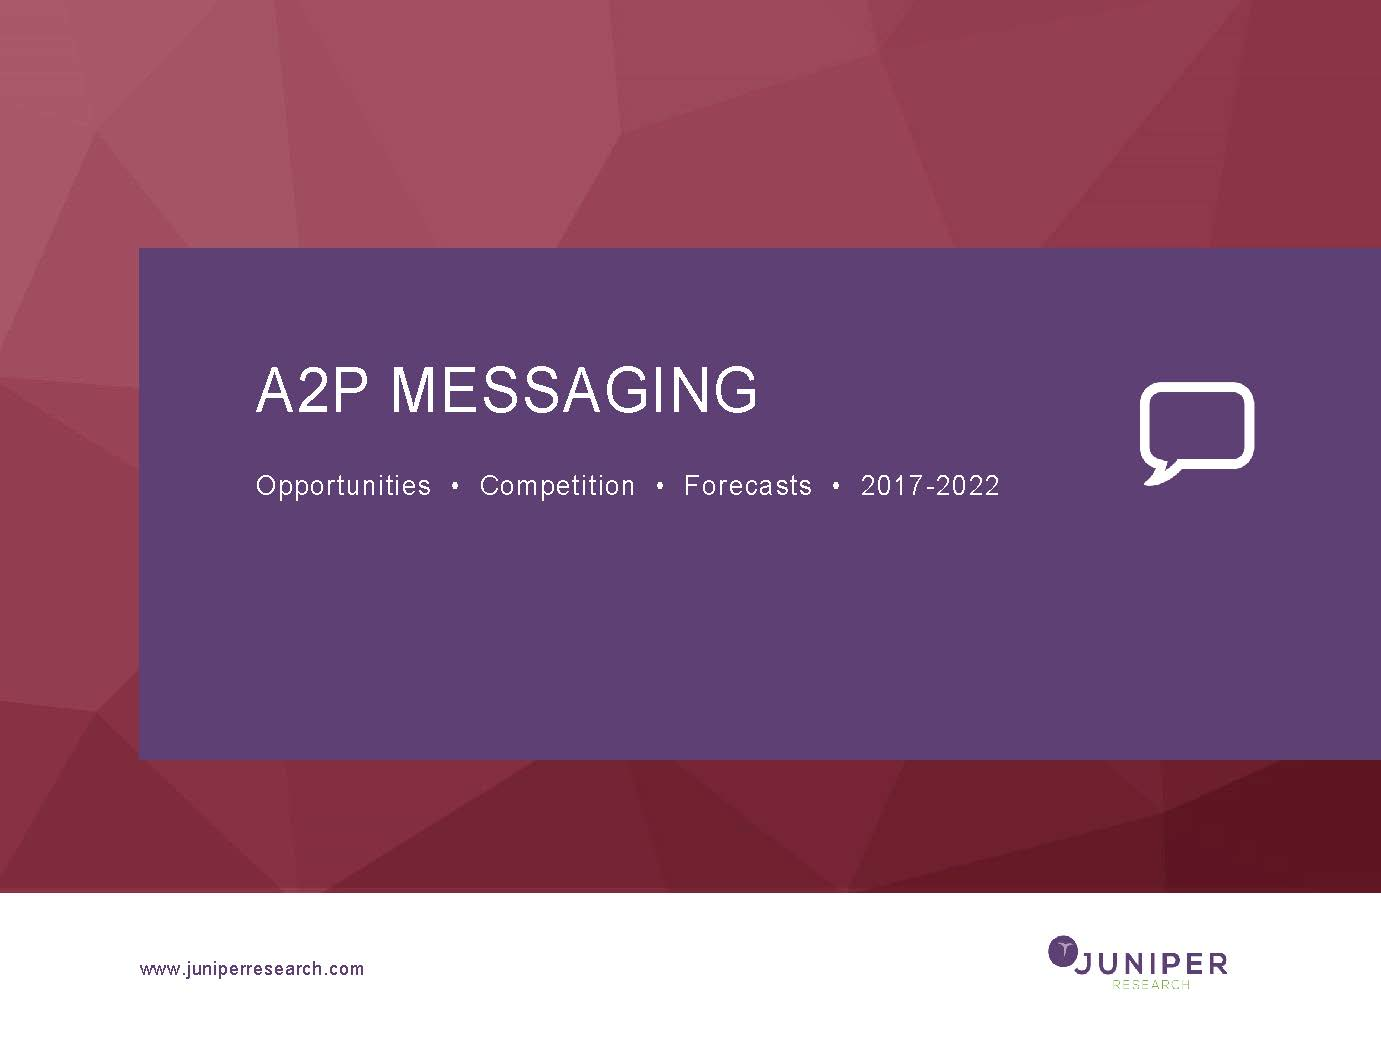 A2P Messaging - Deep Dive Data & Forecasting 2017-2022